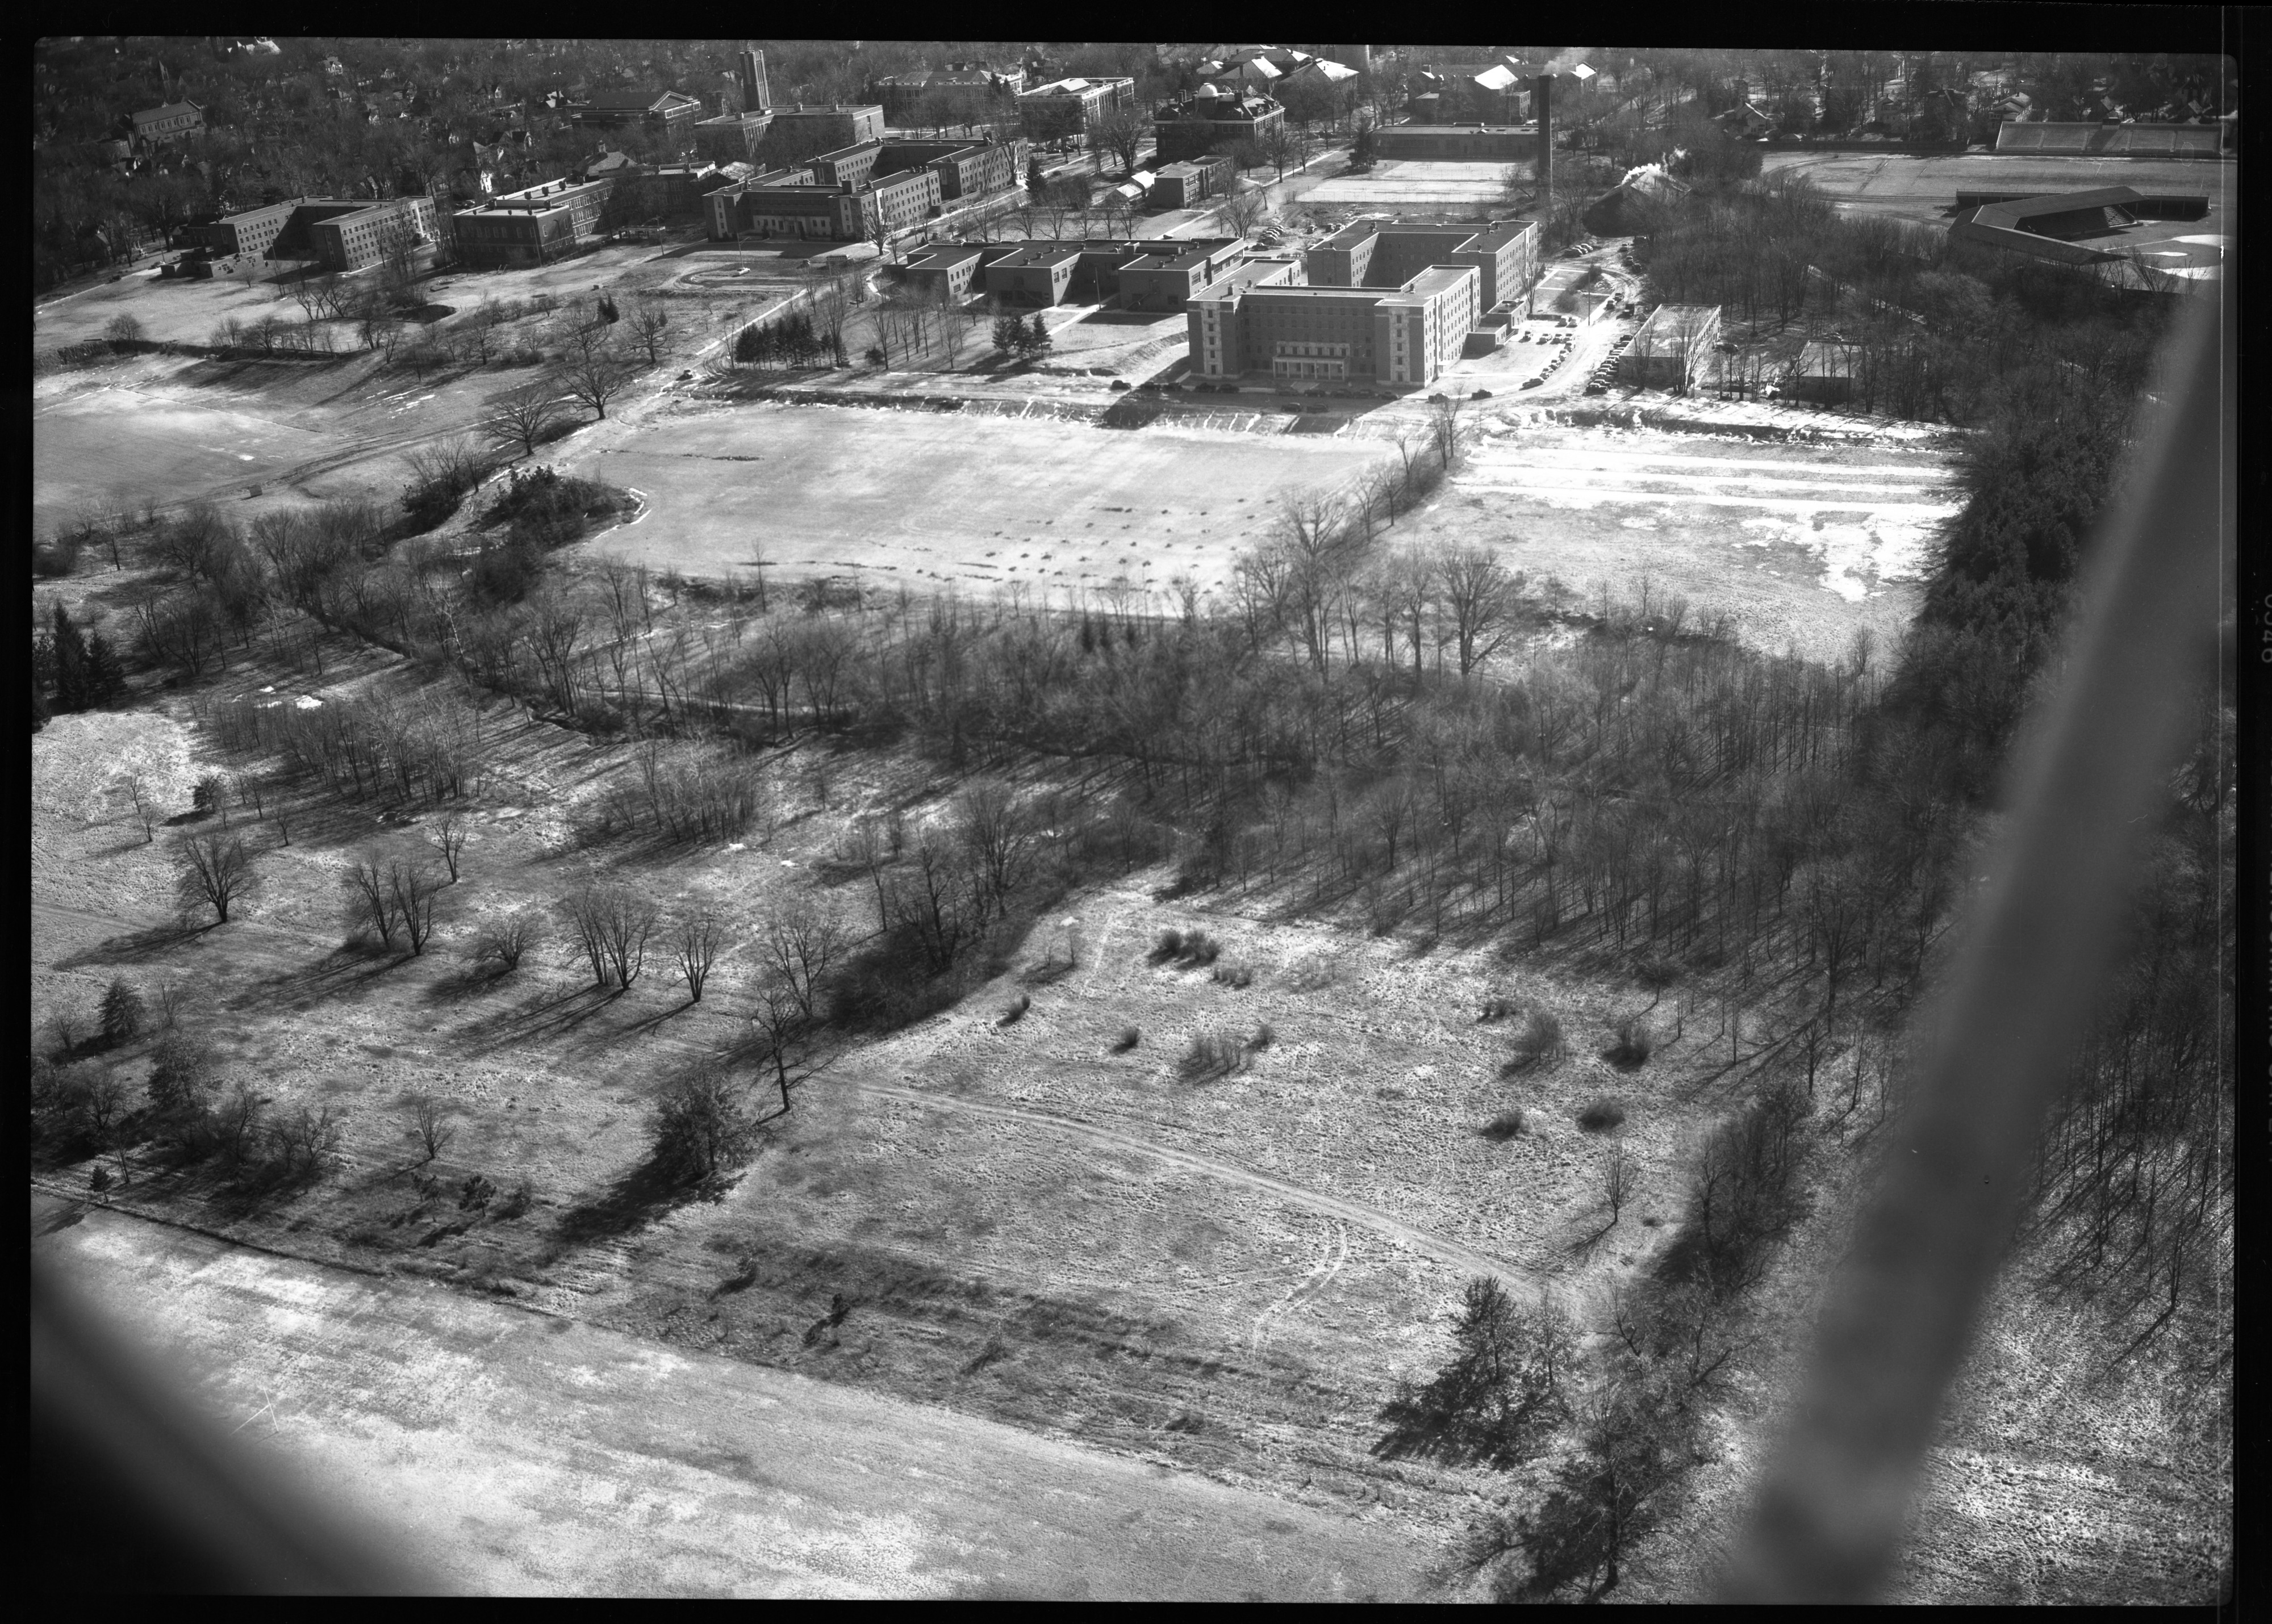 Aerial Photograph Looking South from the State Normal College Golf Course, Ypsilanti, February 1950 image